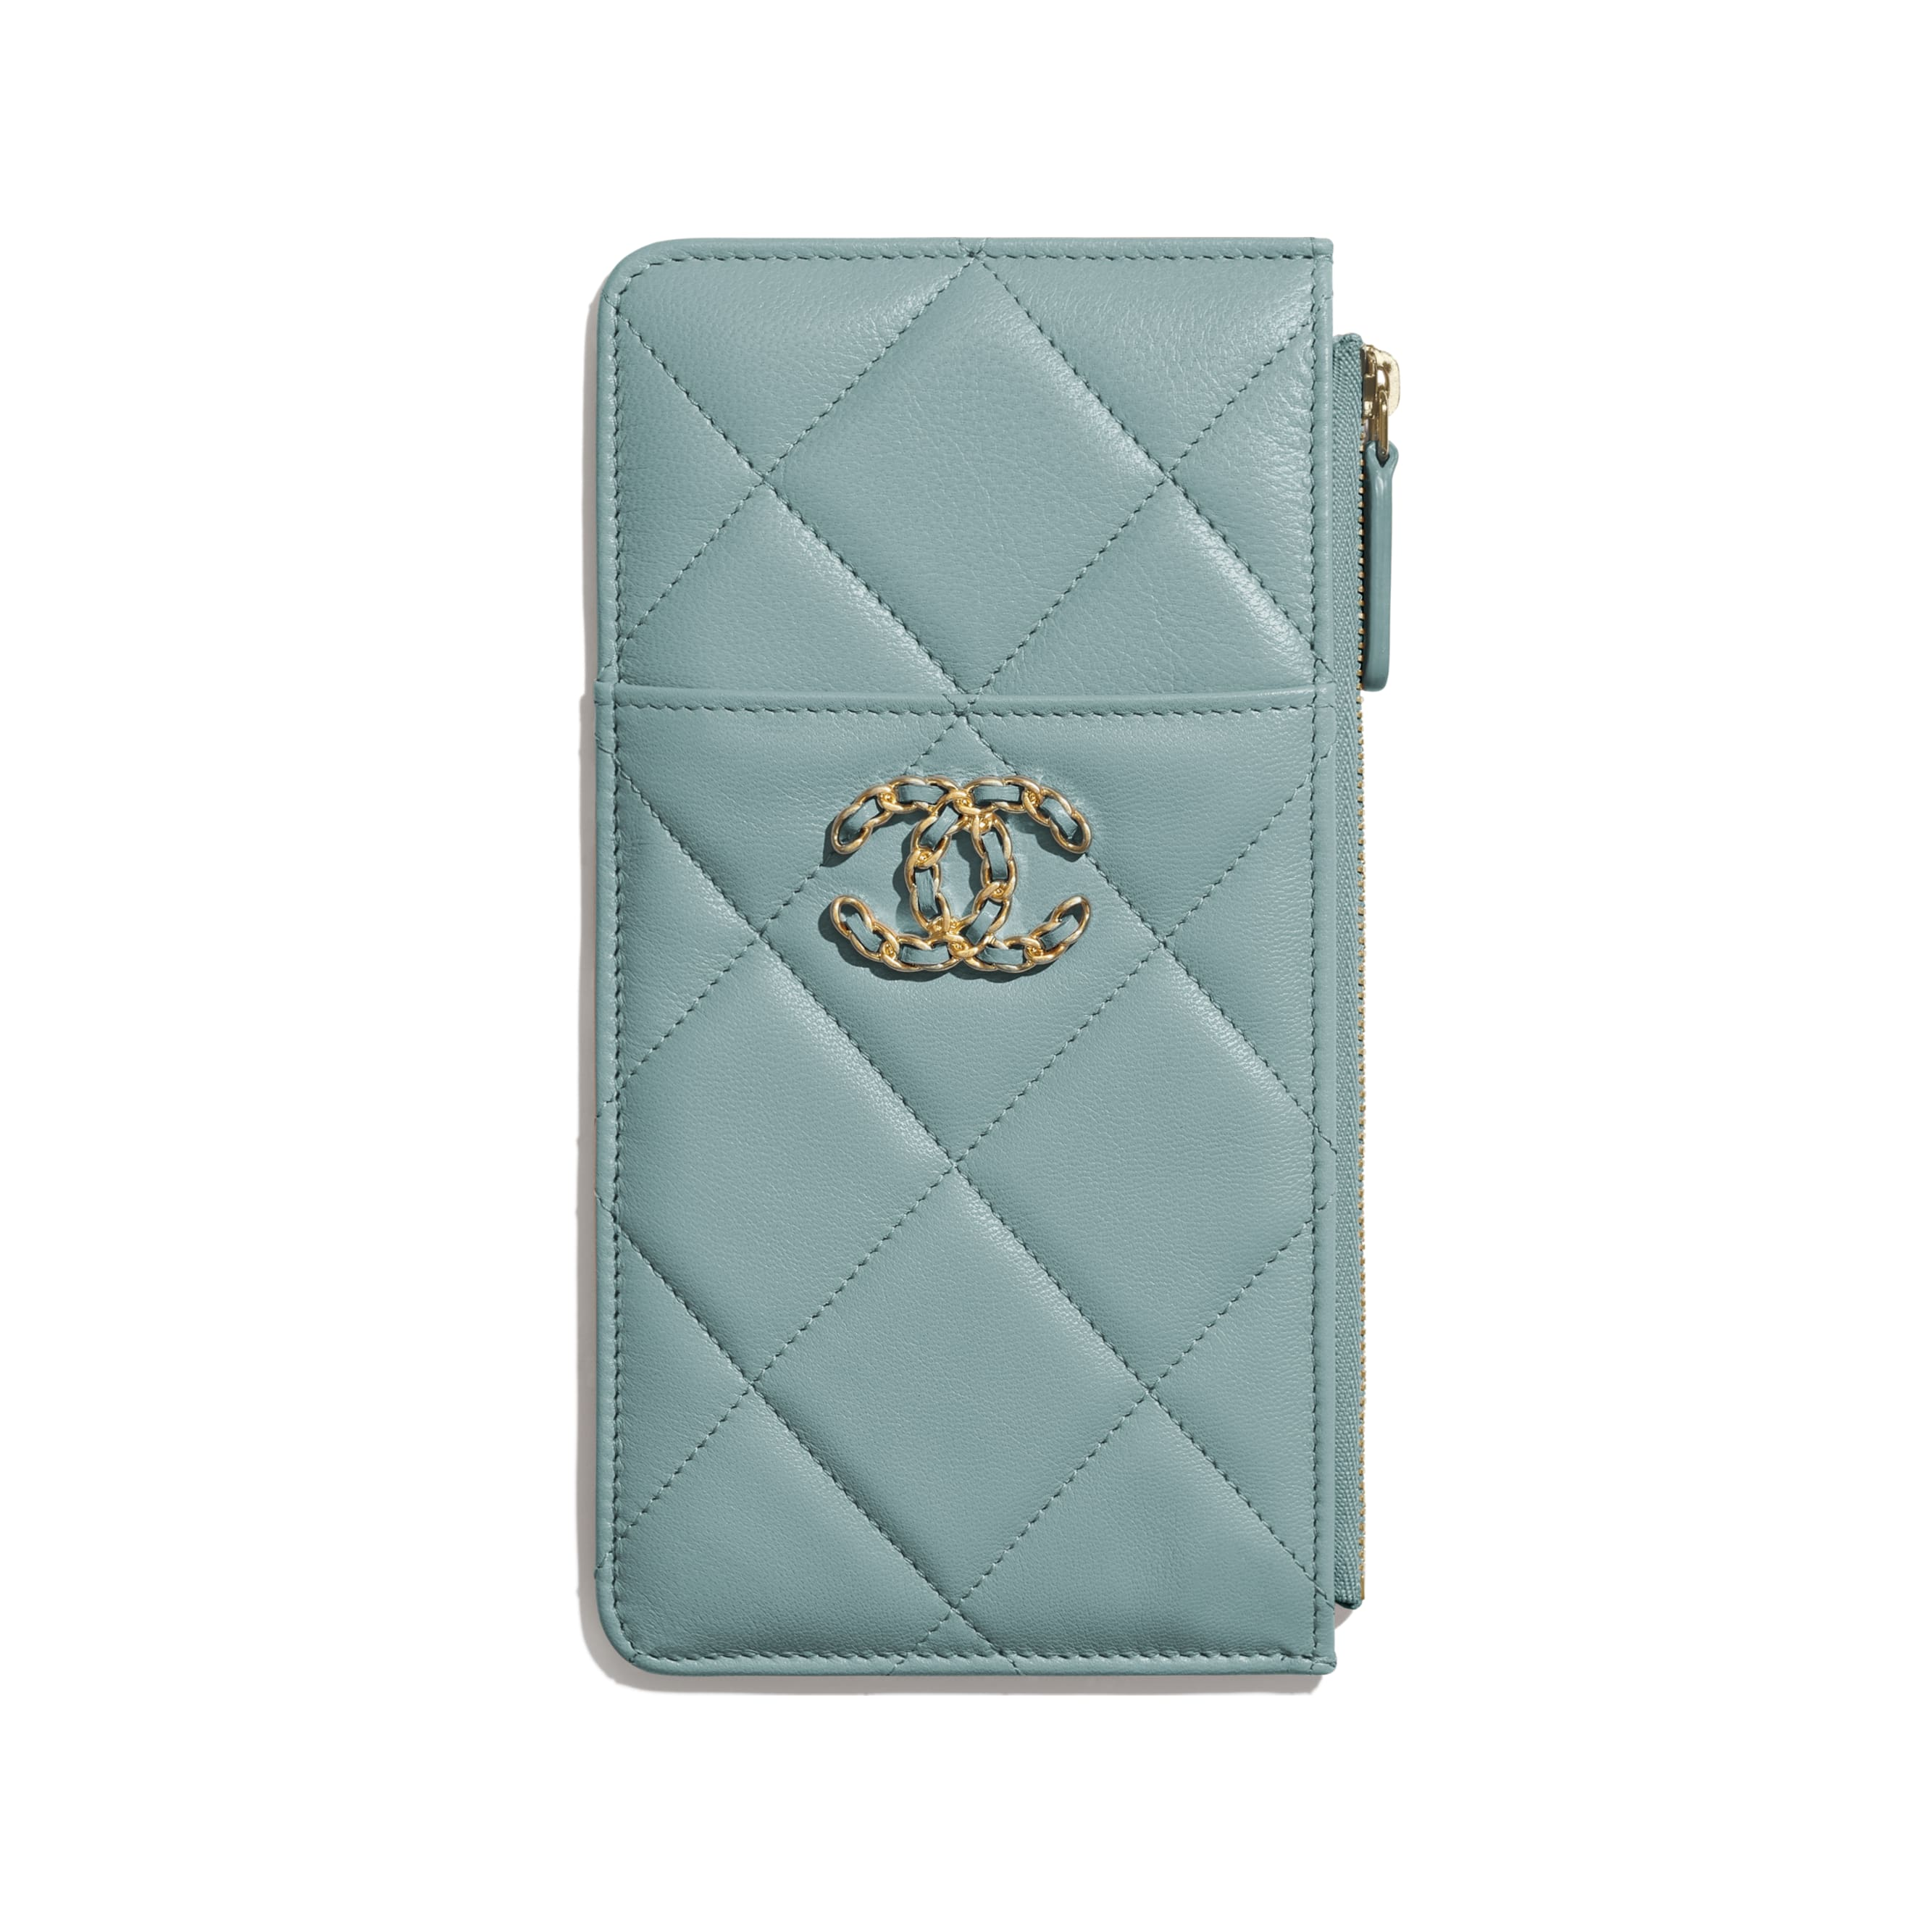 CHANEL 19 Phone & Card Holder - Blue - Shiny Goatskin, Gold-Tone, Silver-Tone & Ruthenium-Finish Metal - Default view - see standard sized version